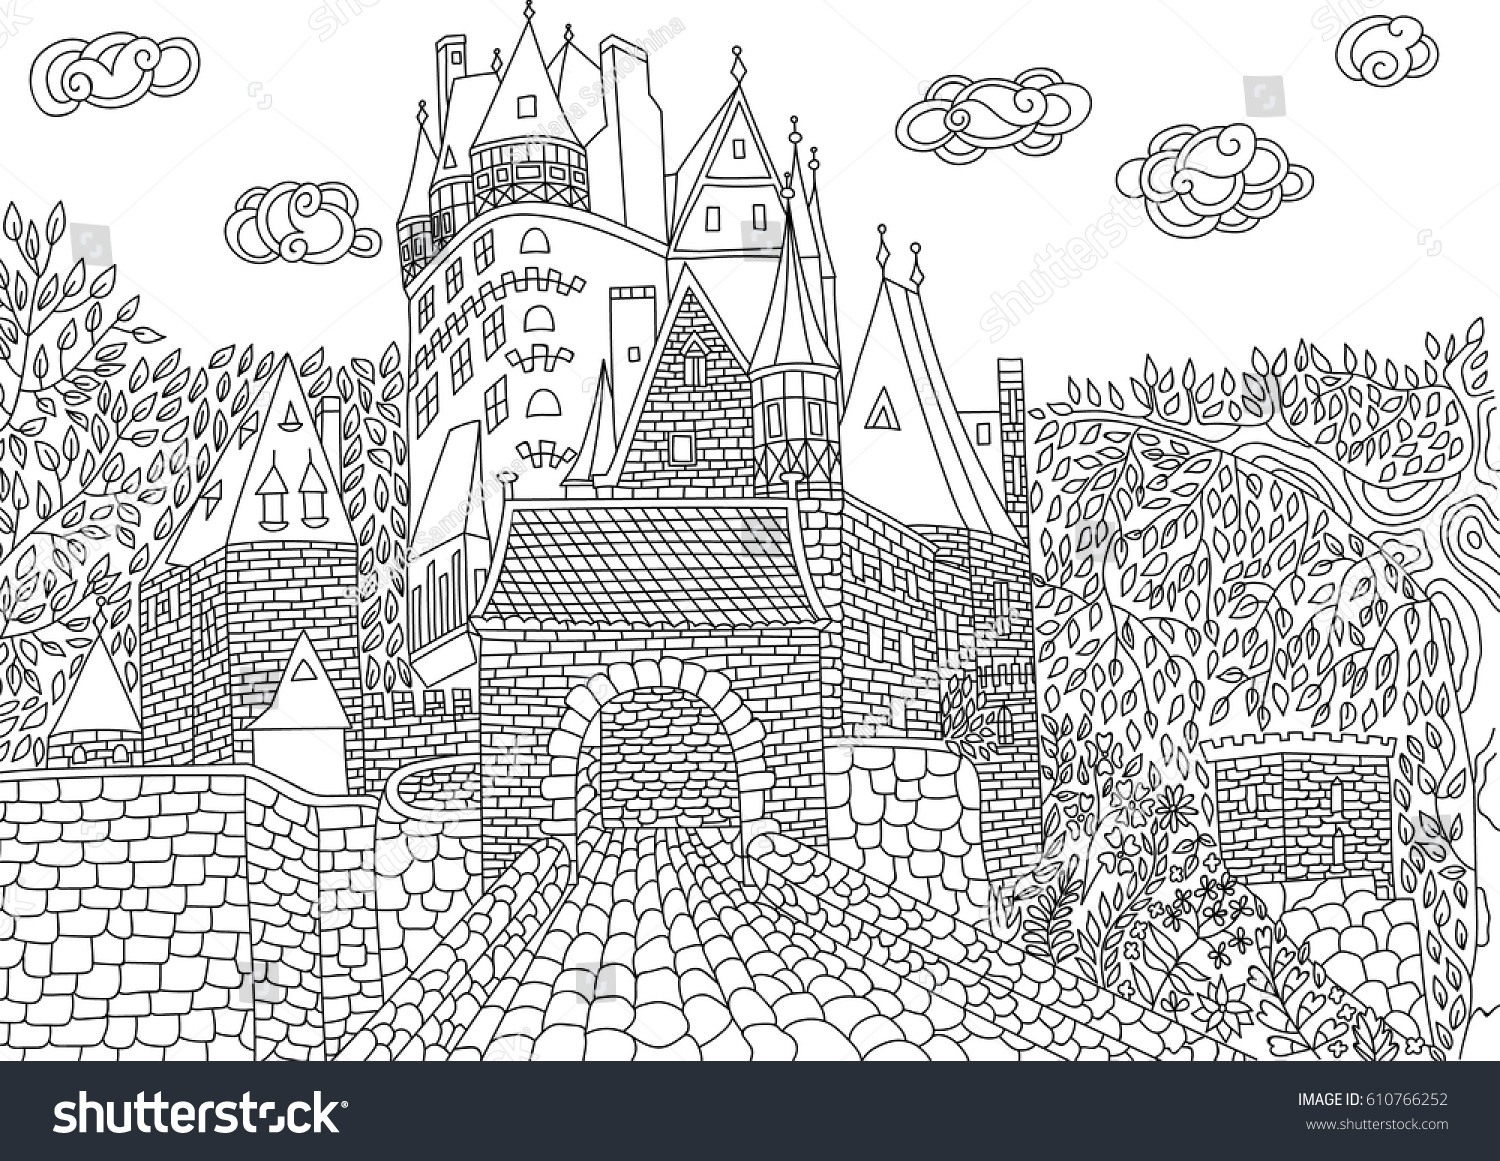 coloring eltz castle germany coloring stock vector 610766252